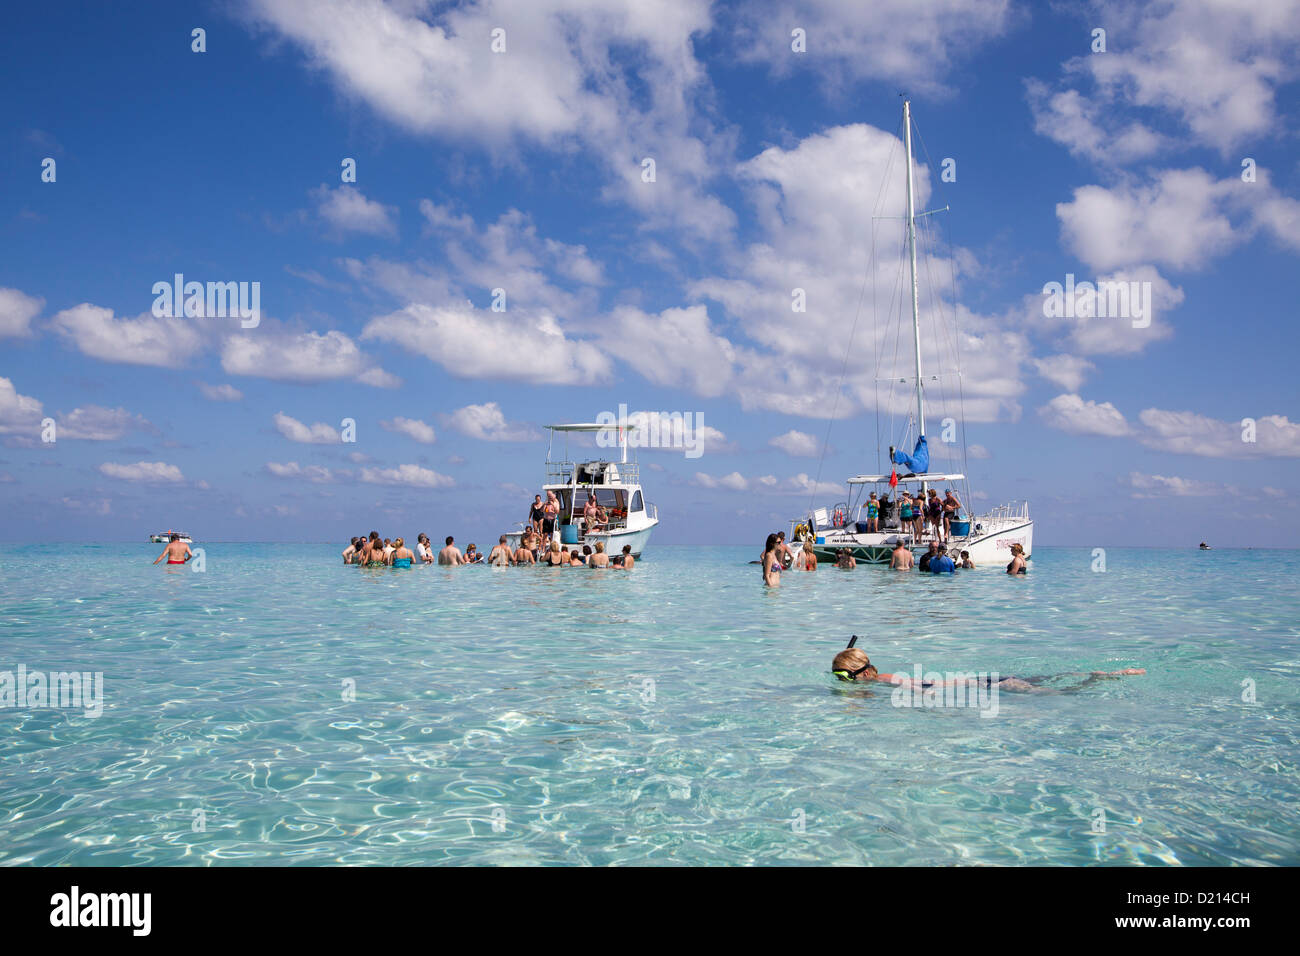 Snorkeler and excursion boats at Stingray City sand bank, Grand Cayman, Cayman Islands, Caribbean - Stock Image